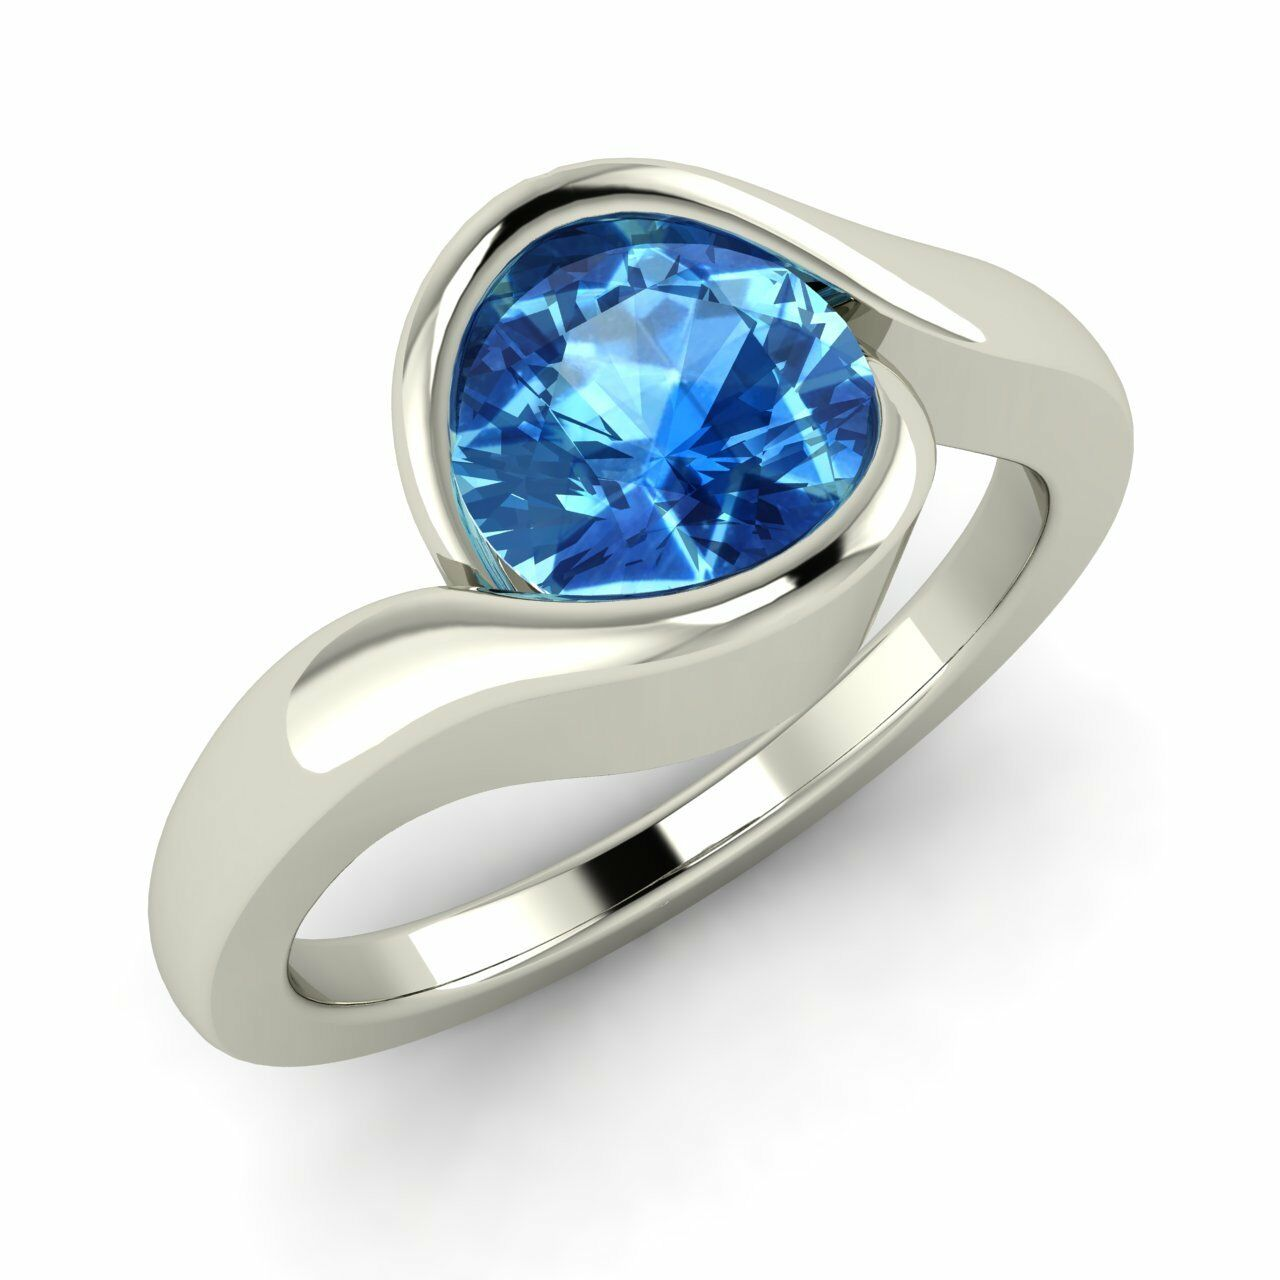 Certified Round Cut 1.20 Cts bluee Topaz 14K White gold Solitaire Engagement Ring